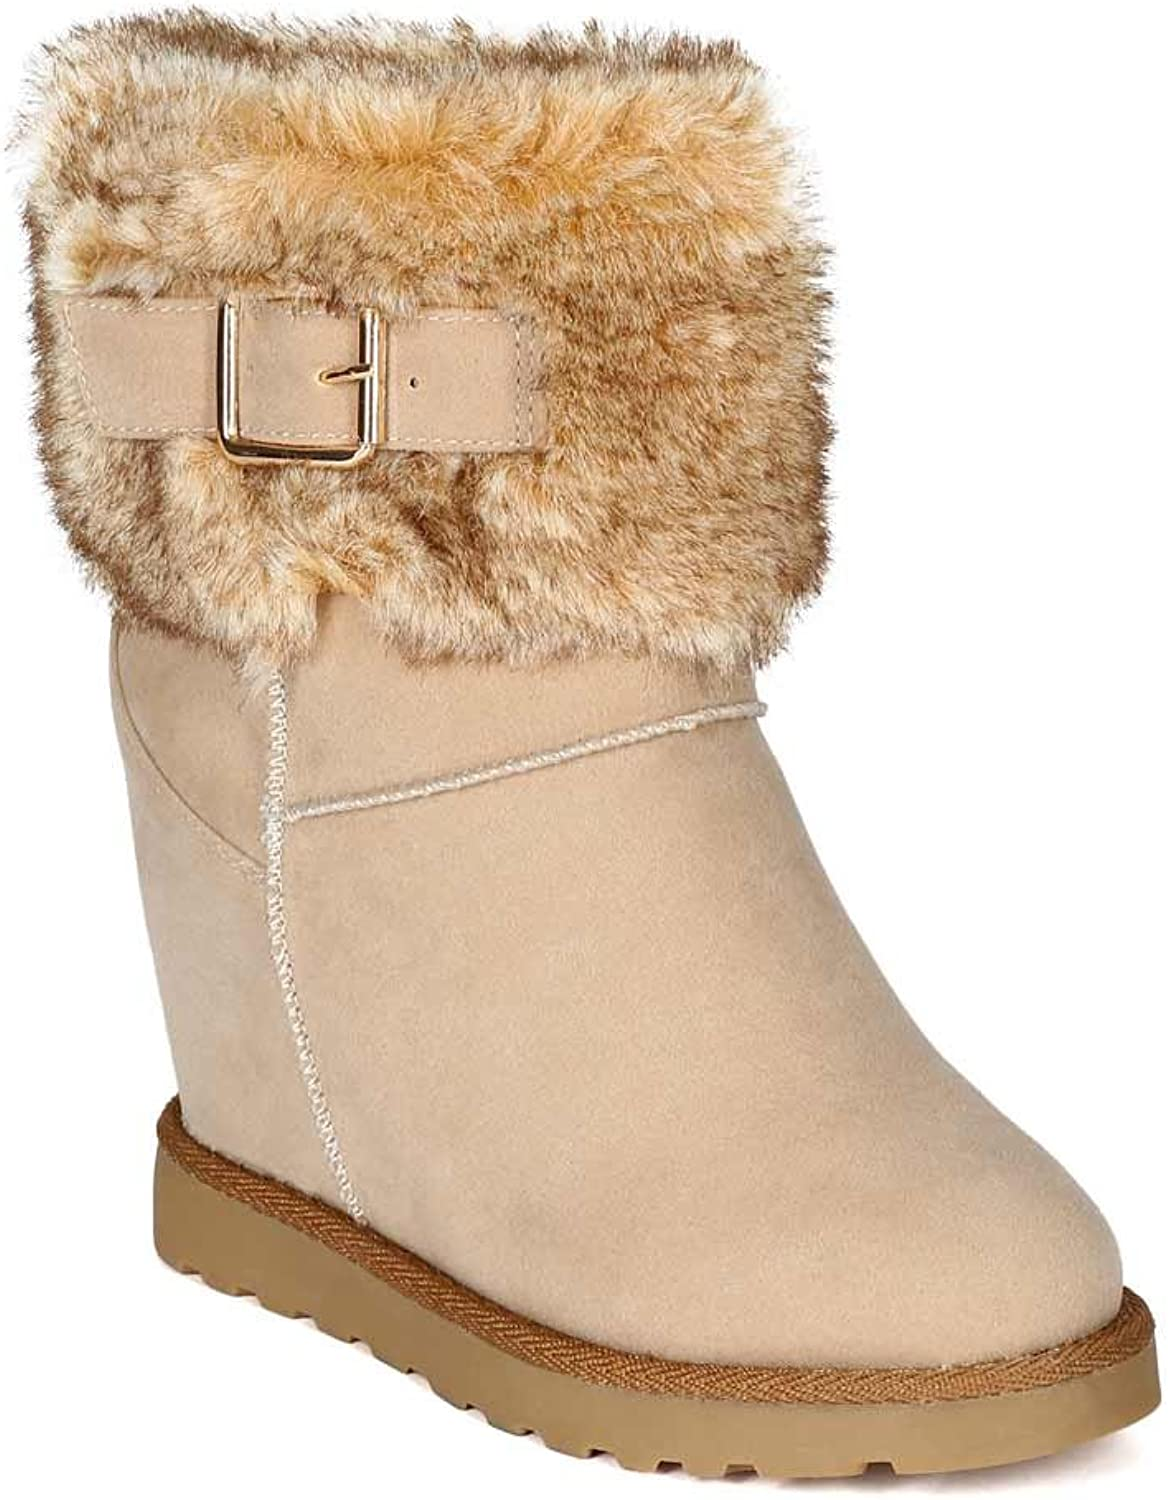 Nature Breeze BG36 Women Suede Fur Cuff Trim Shearling Wedge Bootie - Ice